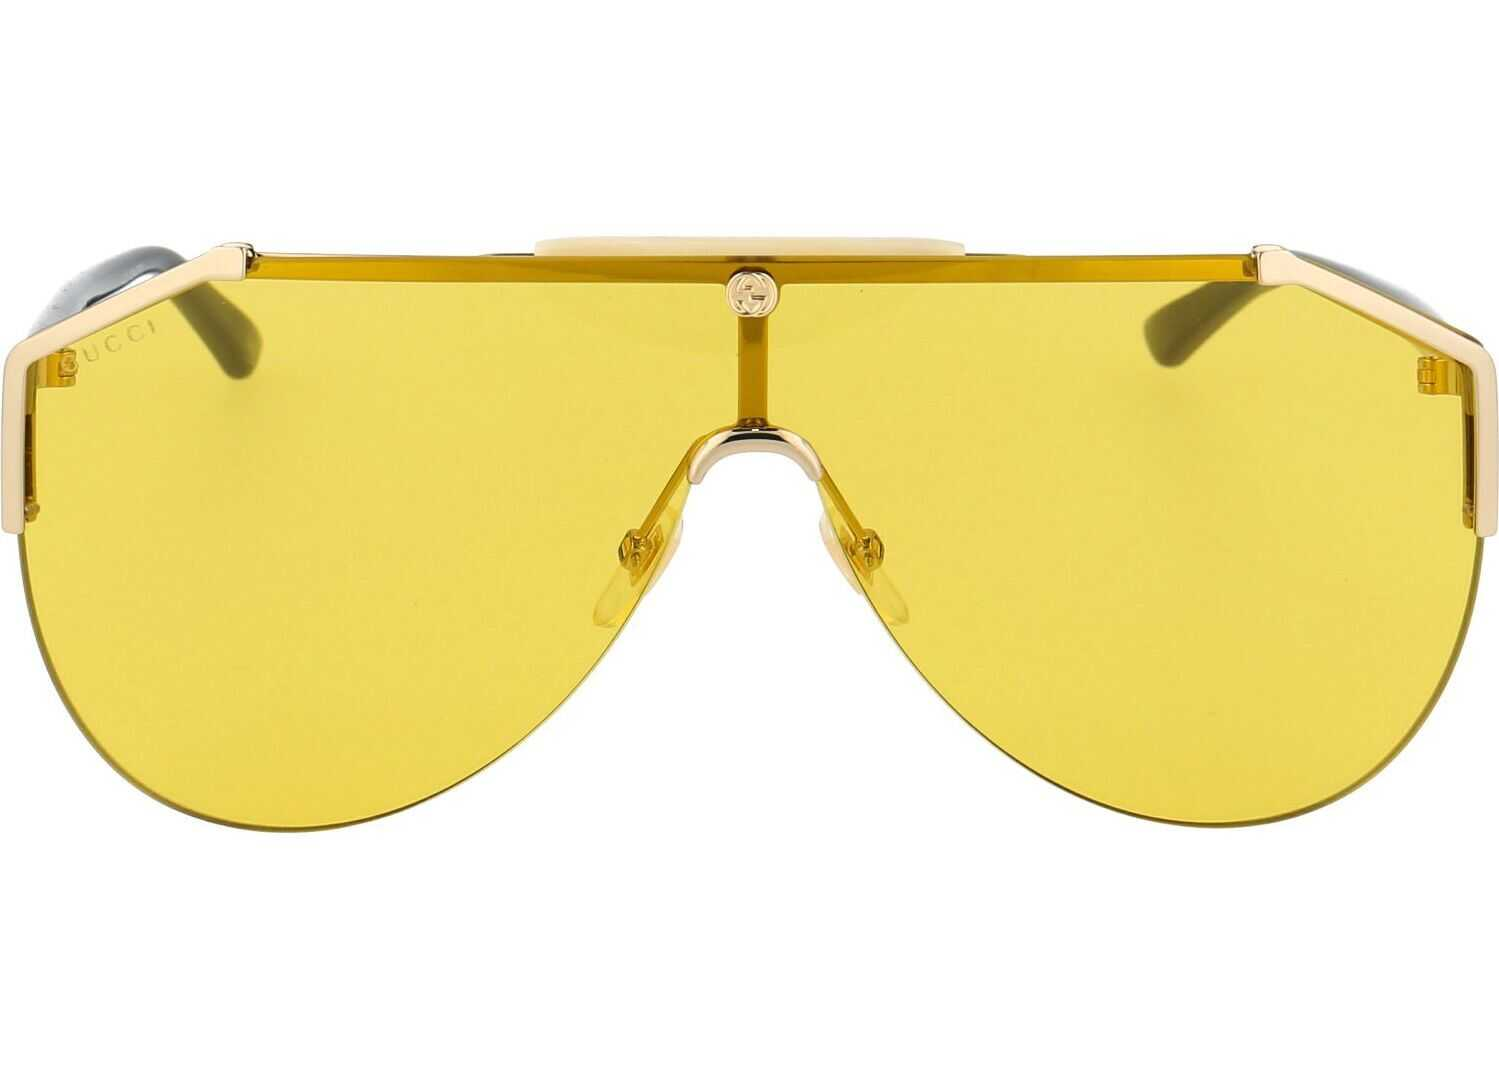 Gucci Metal Sunglasses YELLOW